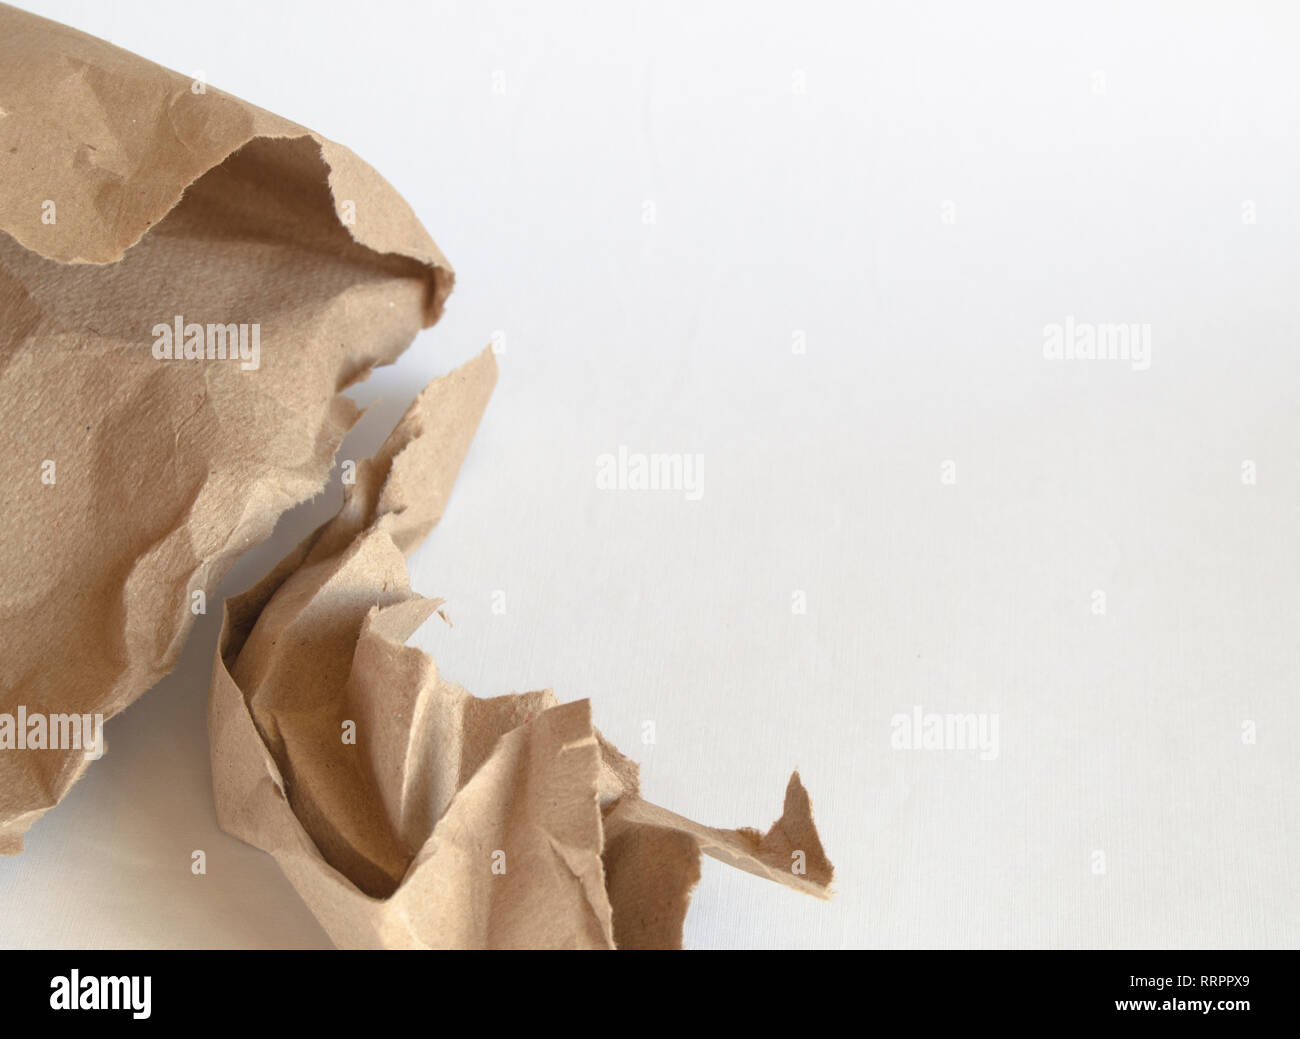 Crumpled brown wrapping paper and texture, clipping, isolated on white background. - Stock Image